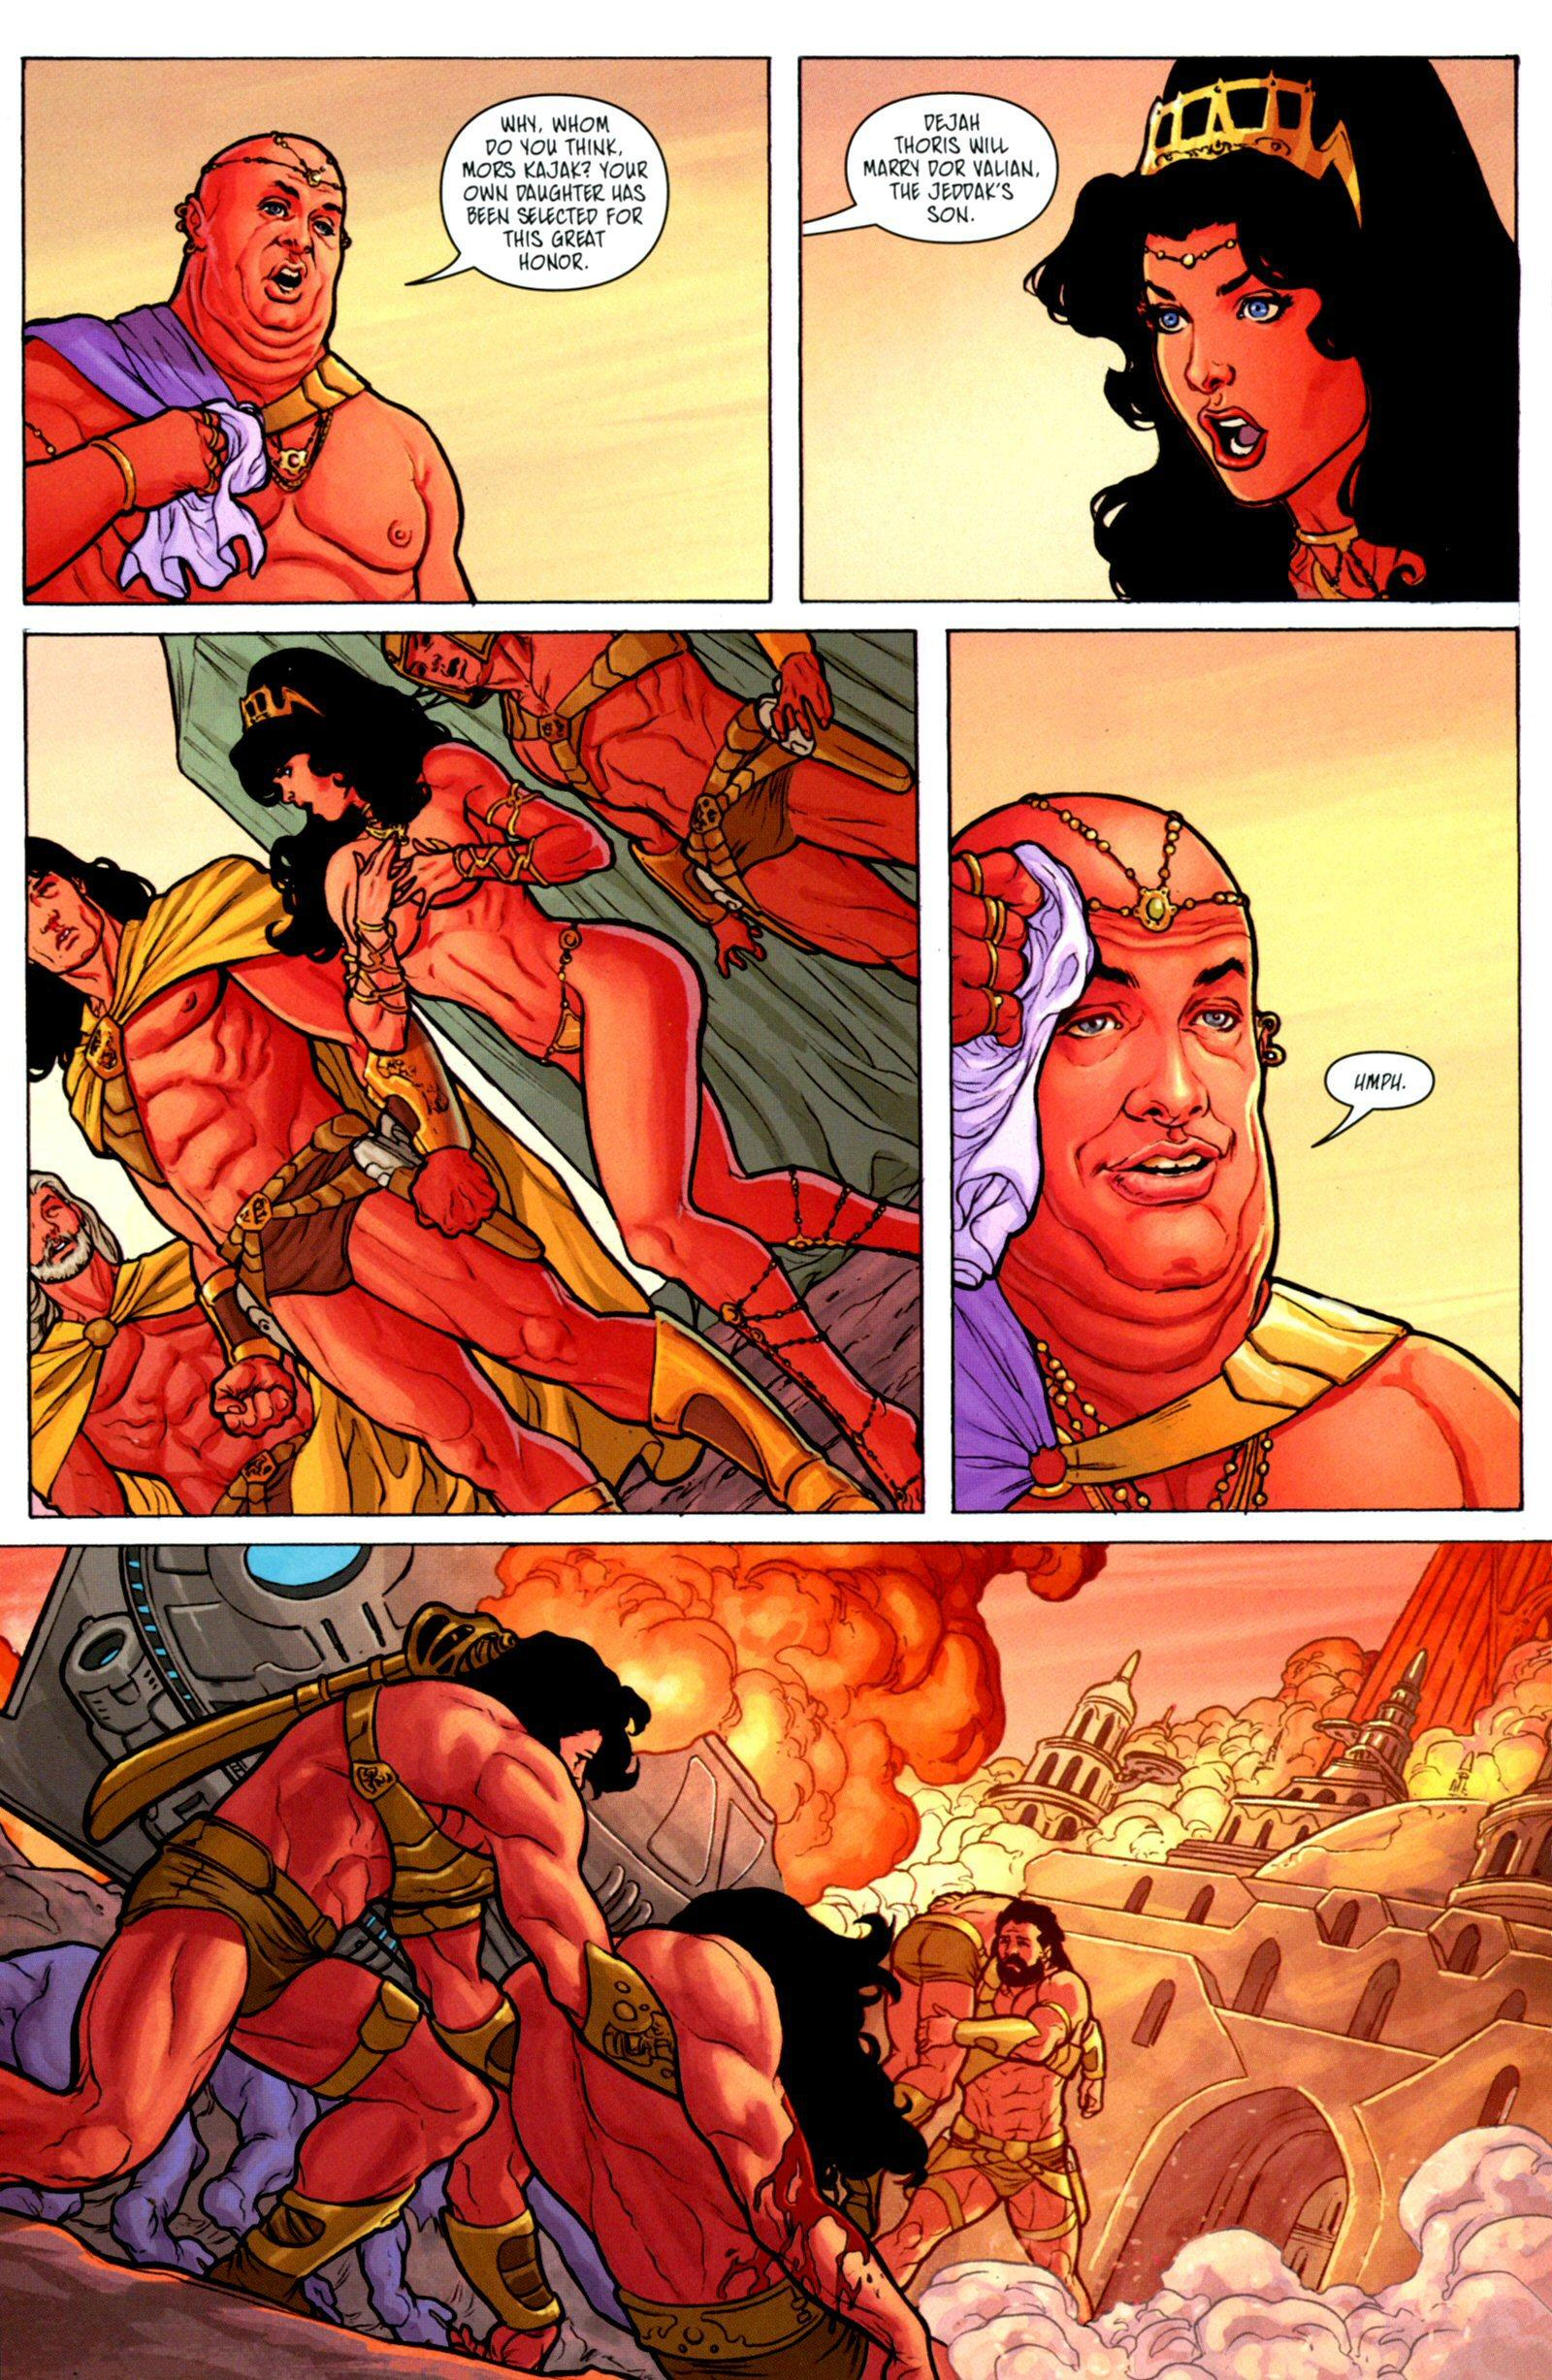 Dejah Thoris Colossus of Mars review